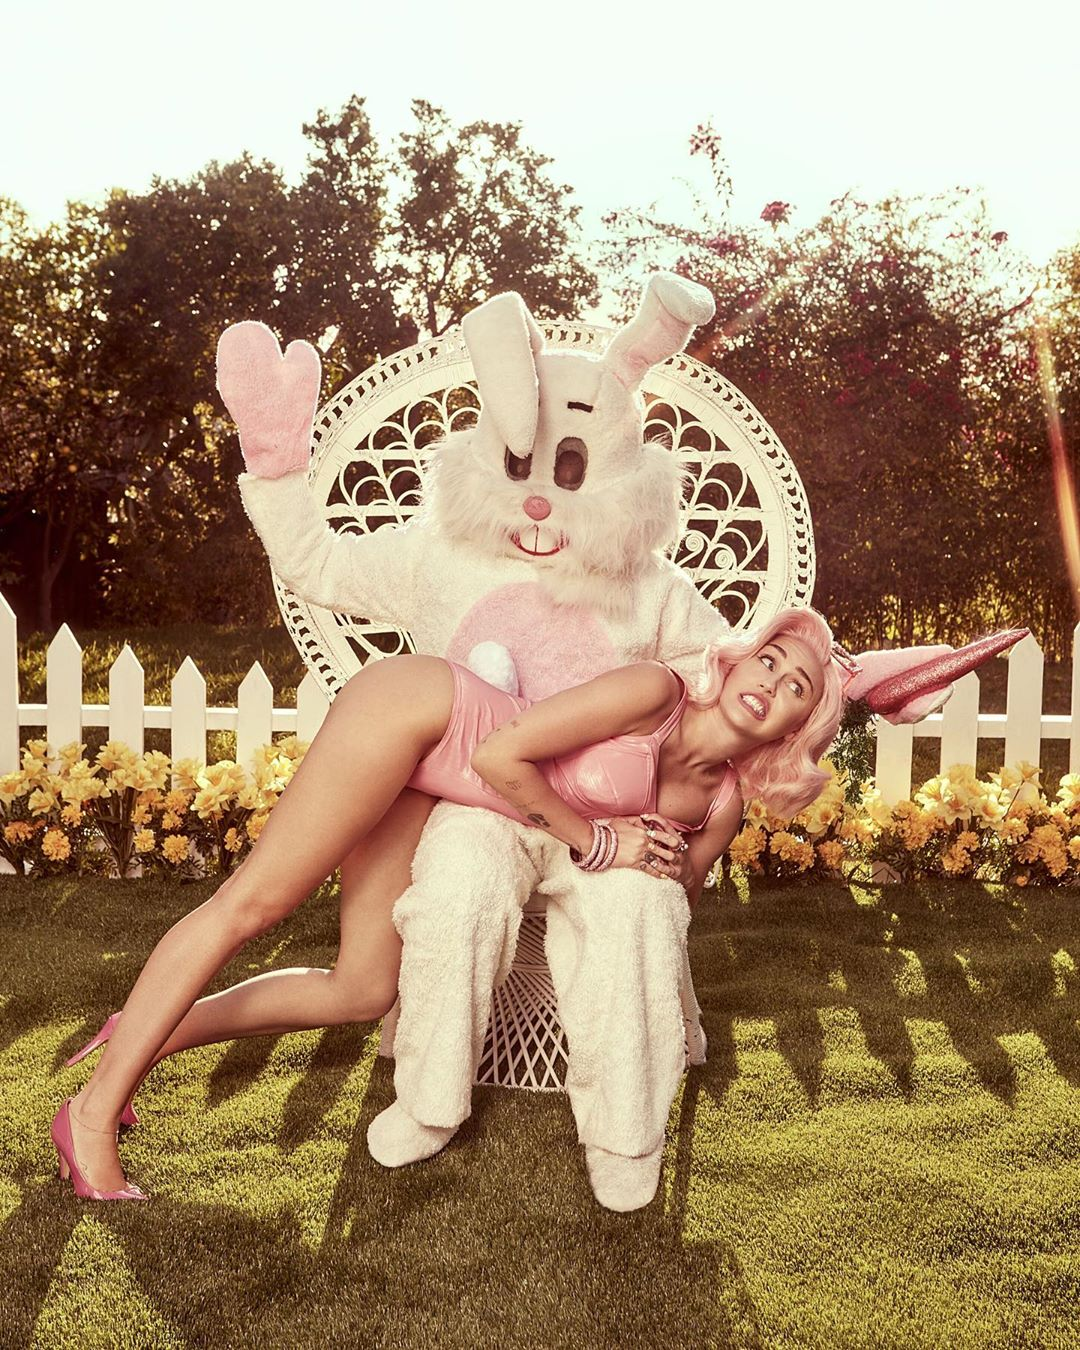 Rita ora dresses as a sexy easter bunny as she eats chocolate eggs in her knickers